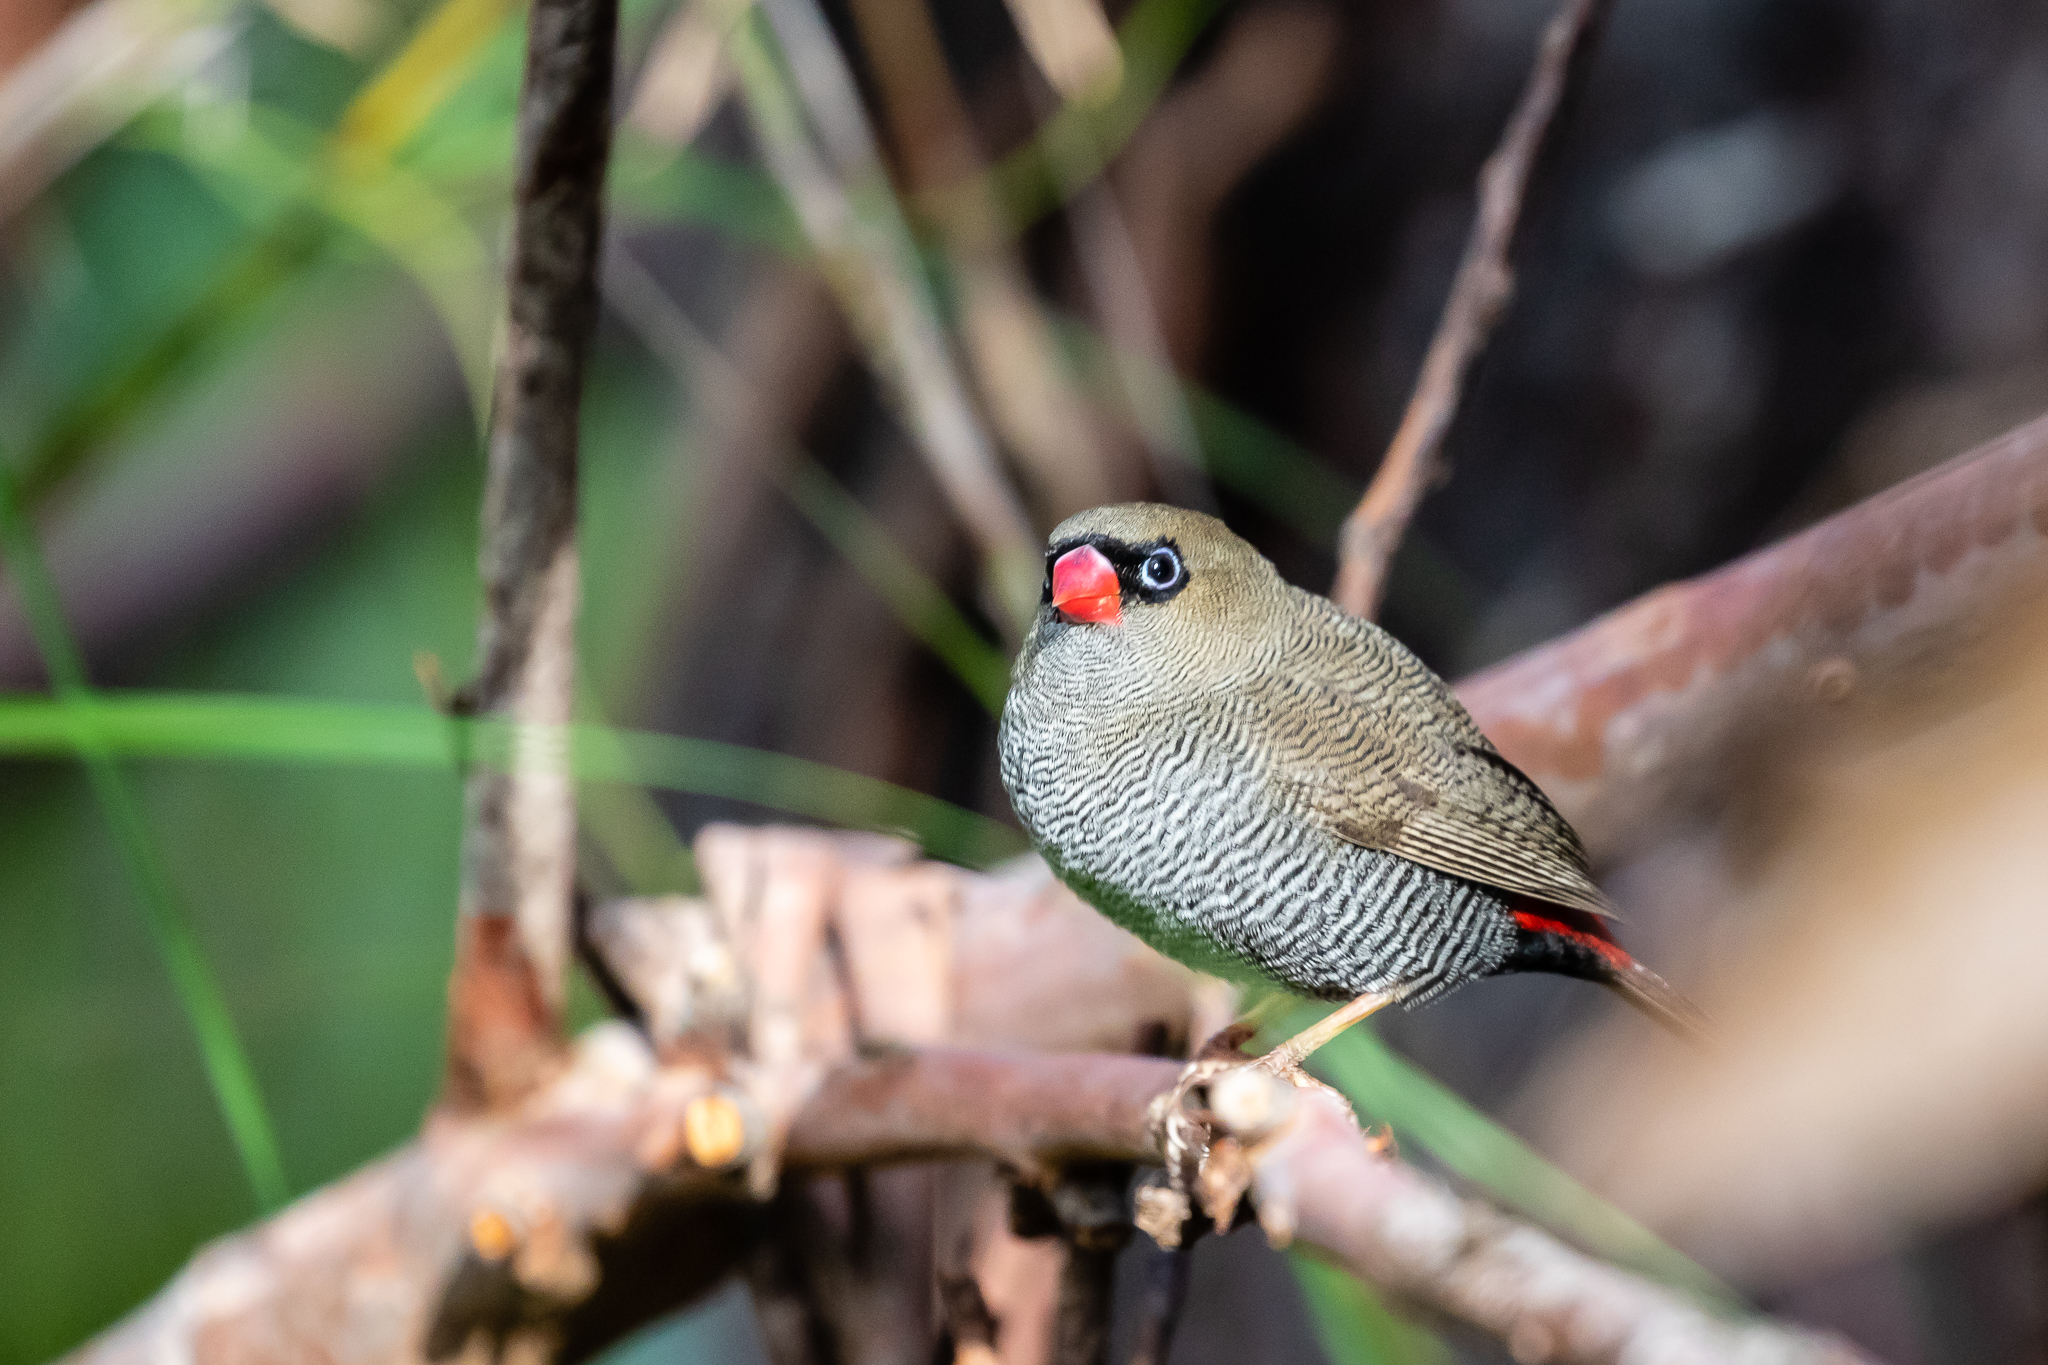 The Beautiful Firetail (13 cm) inhabits the south of Victoria, southern coastal NSW, South Australia and Tasmania. It prefers damp areas and feeds on seeds and insects in low undergrowth.